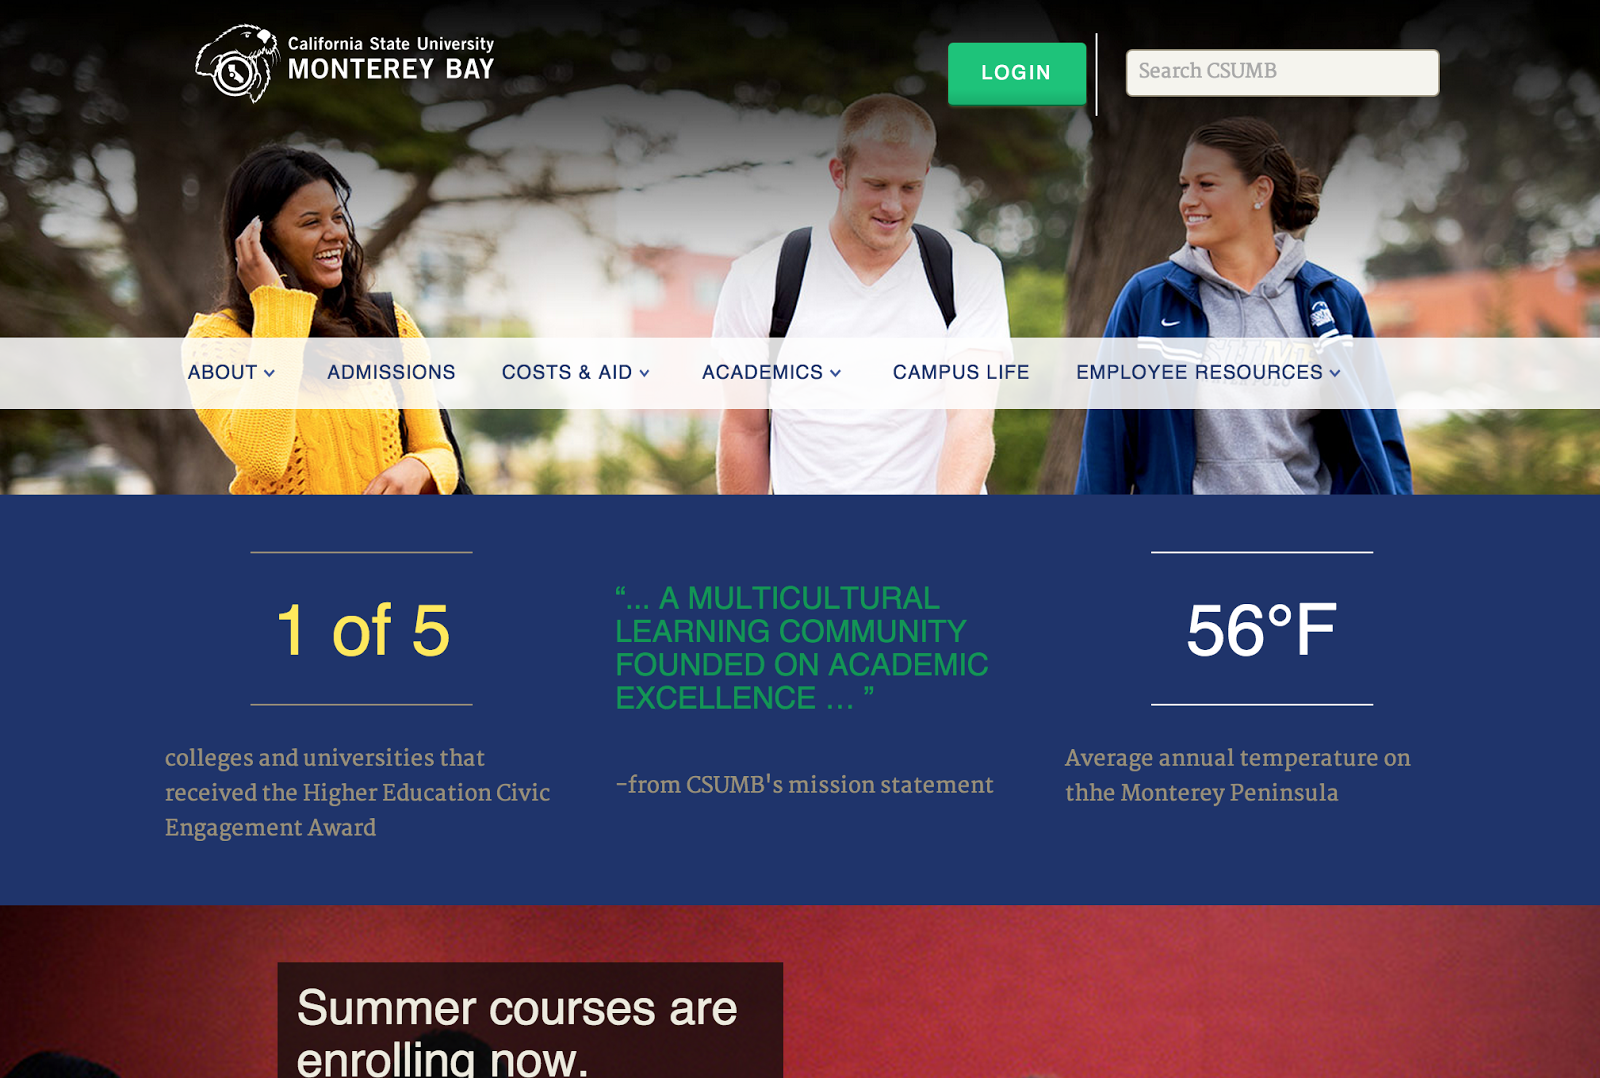 screenshot of the CSUMB homepage